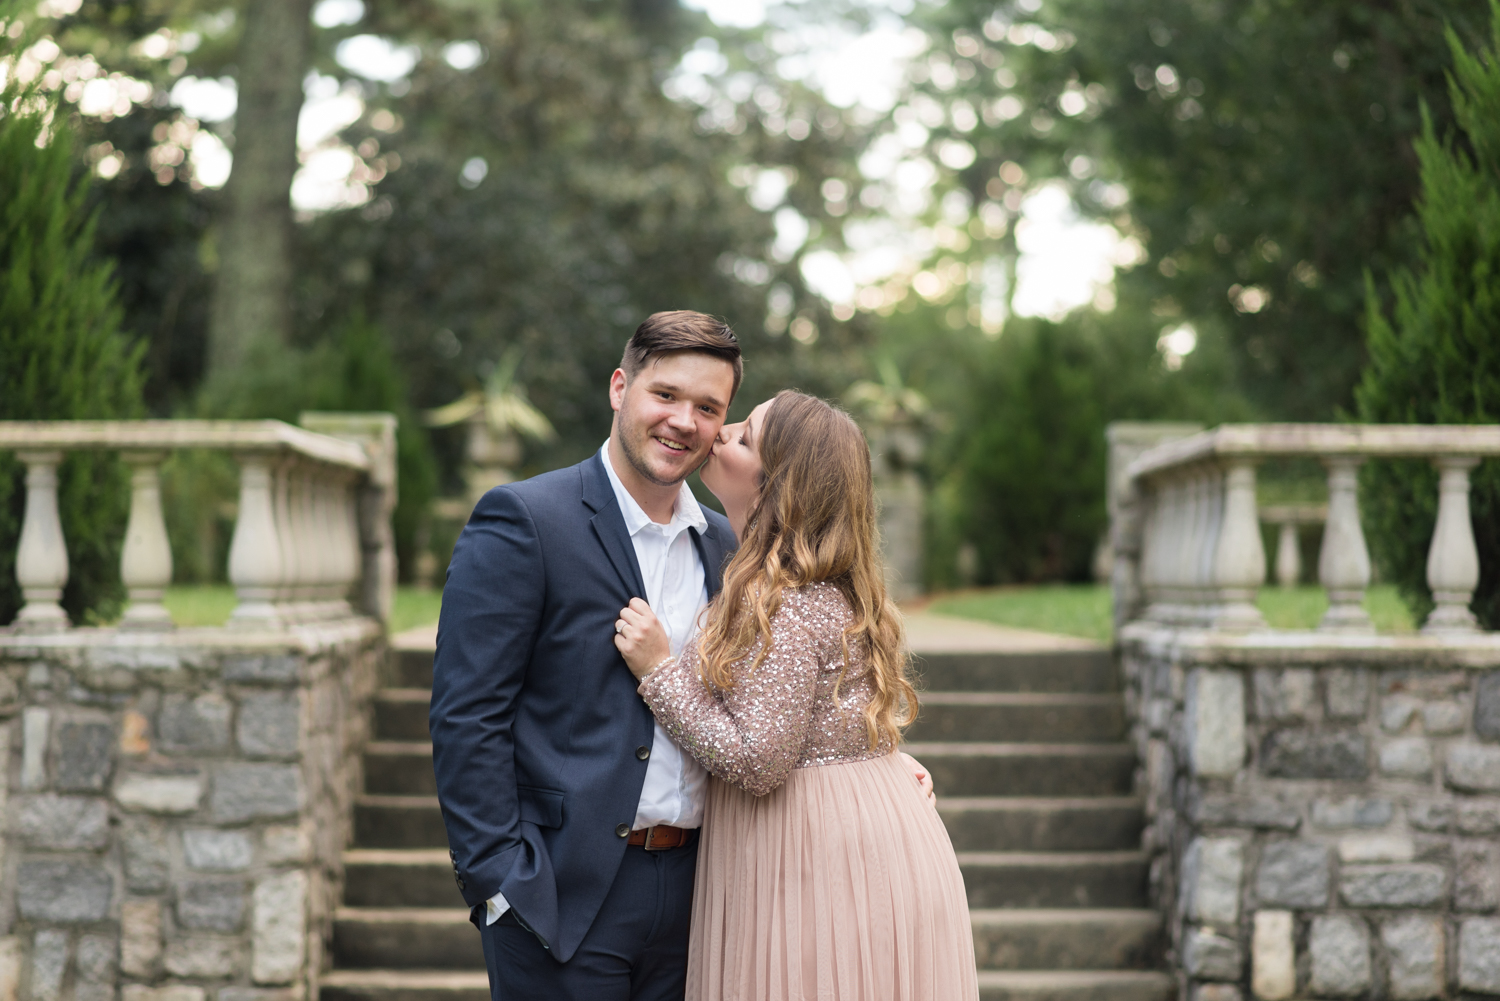 Formal Engagement Session at Norfolk Botanical Garden-32.jpg